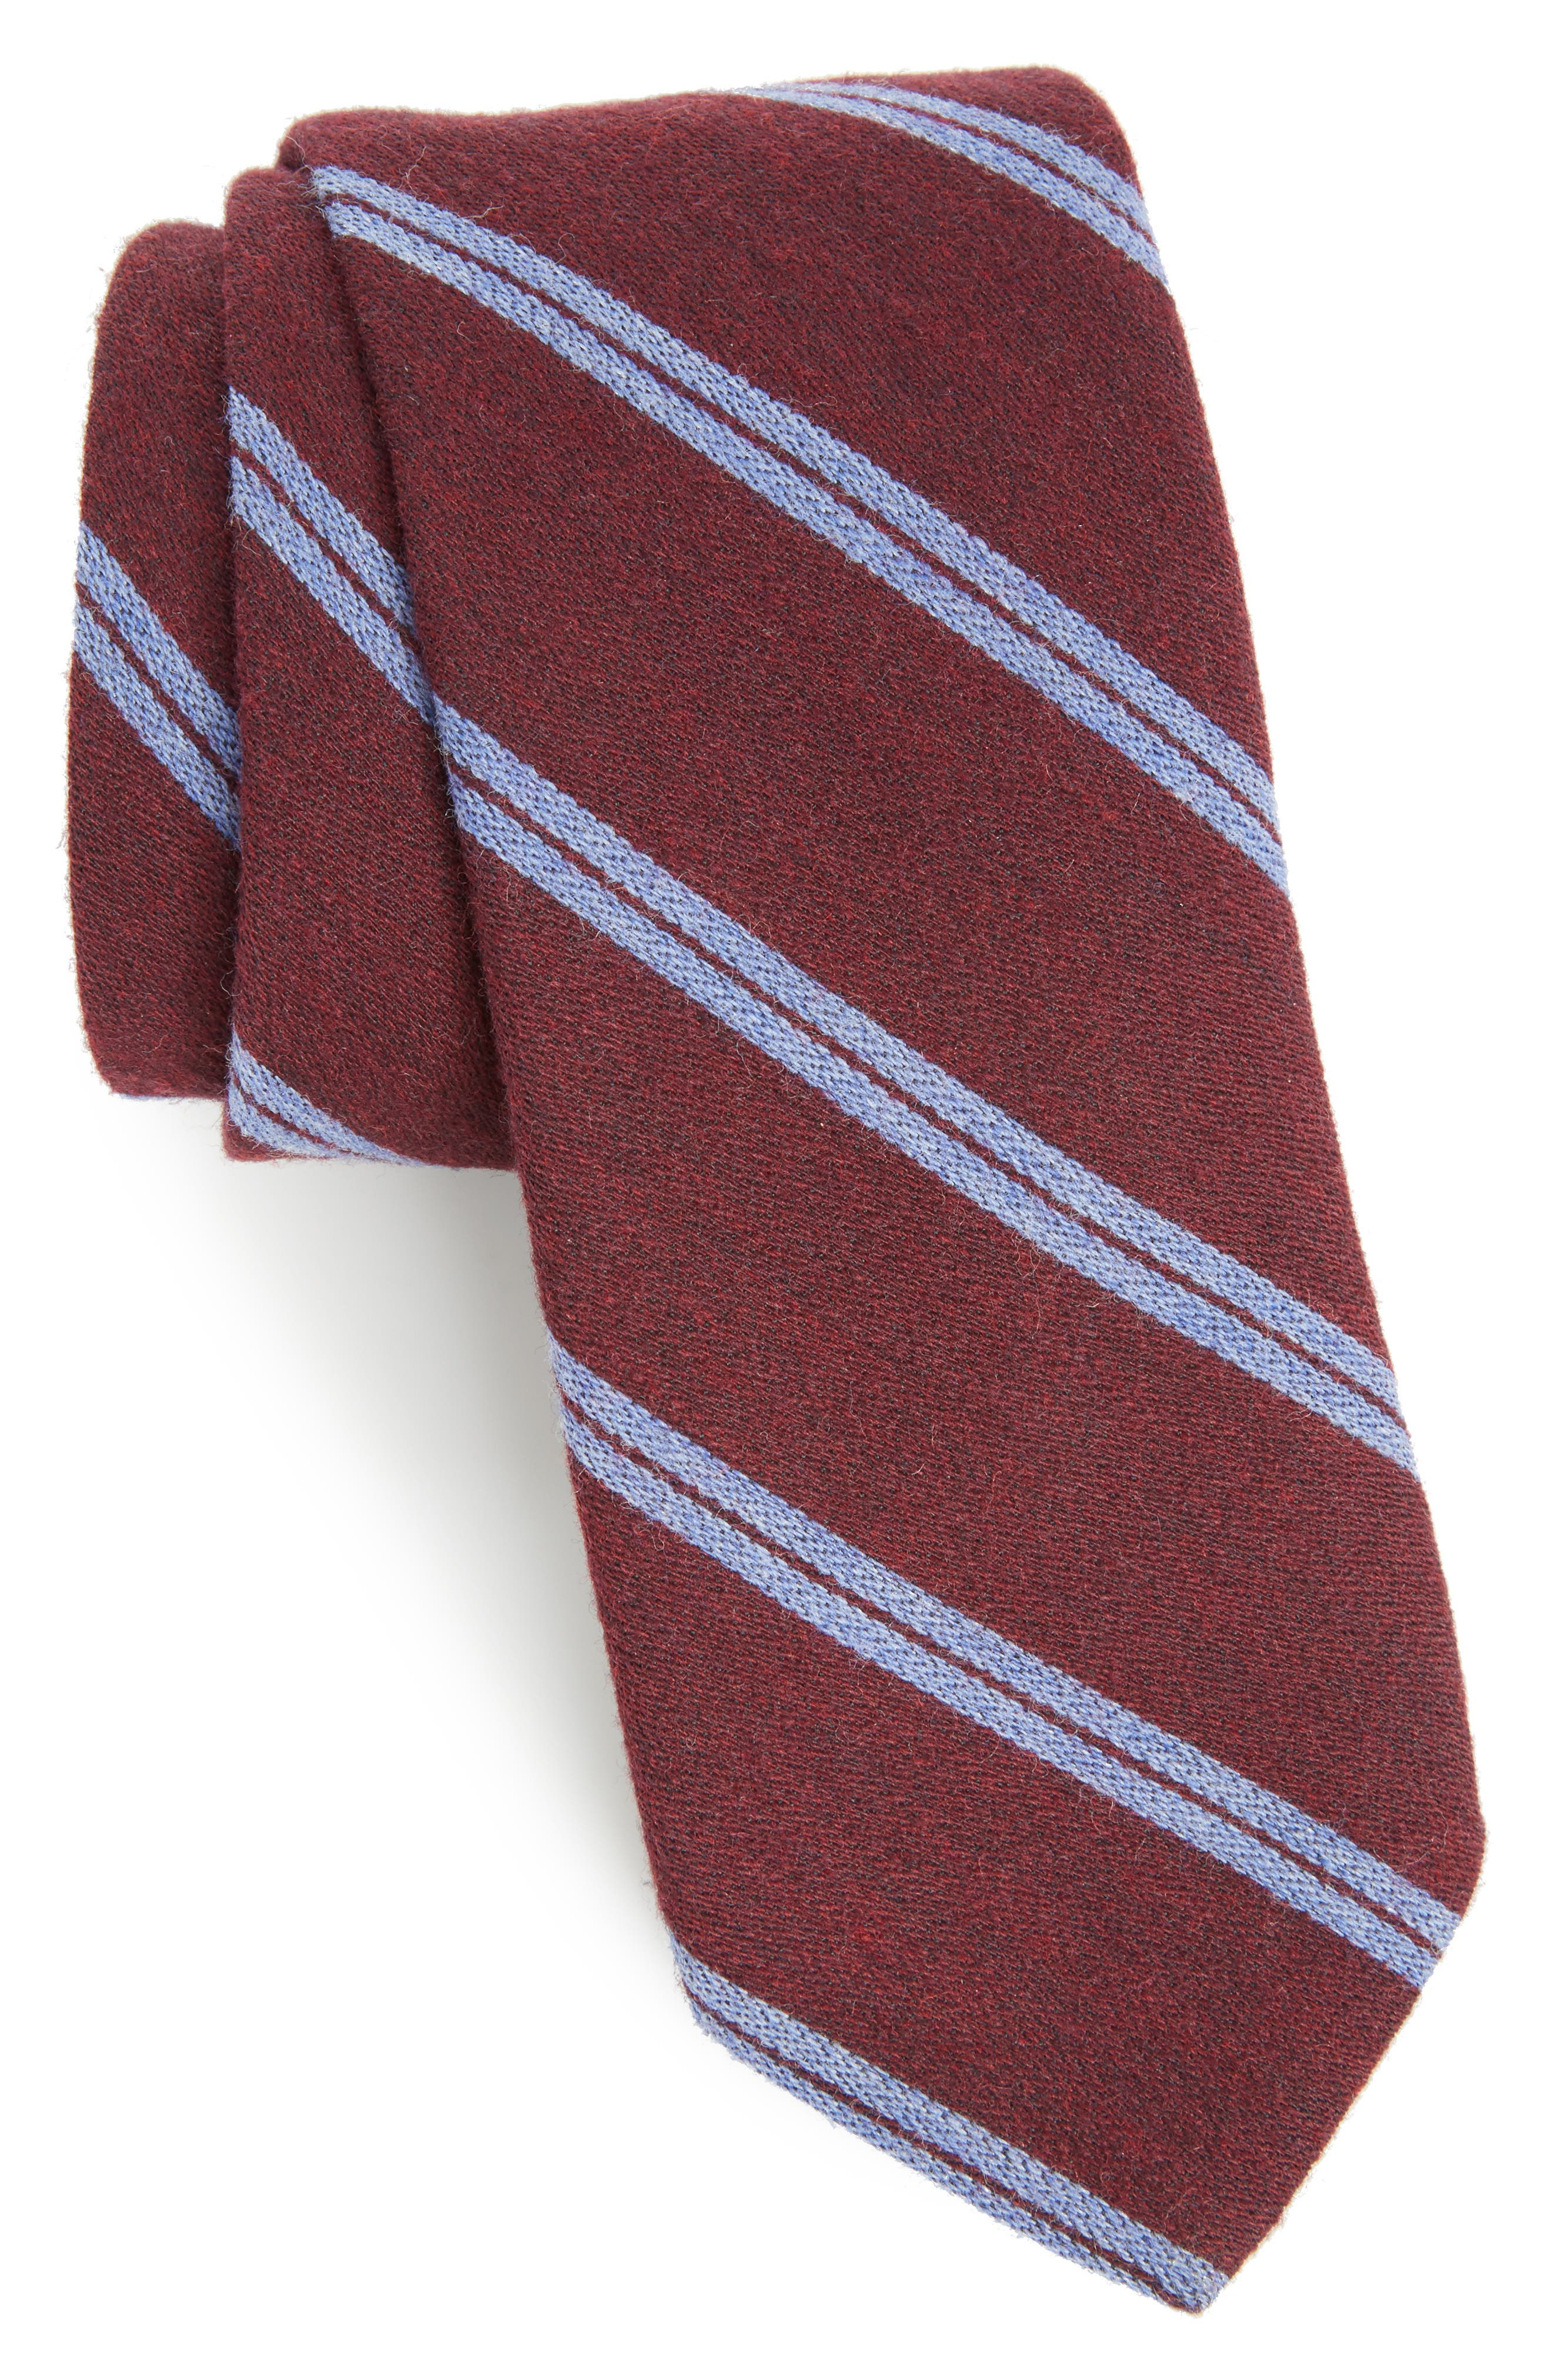 Deo Stripe Wool Tie,                             Main thumbnail 1, color,                             Red